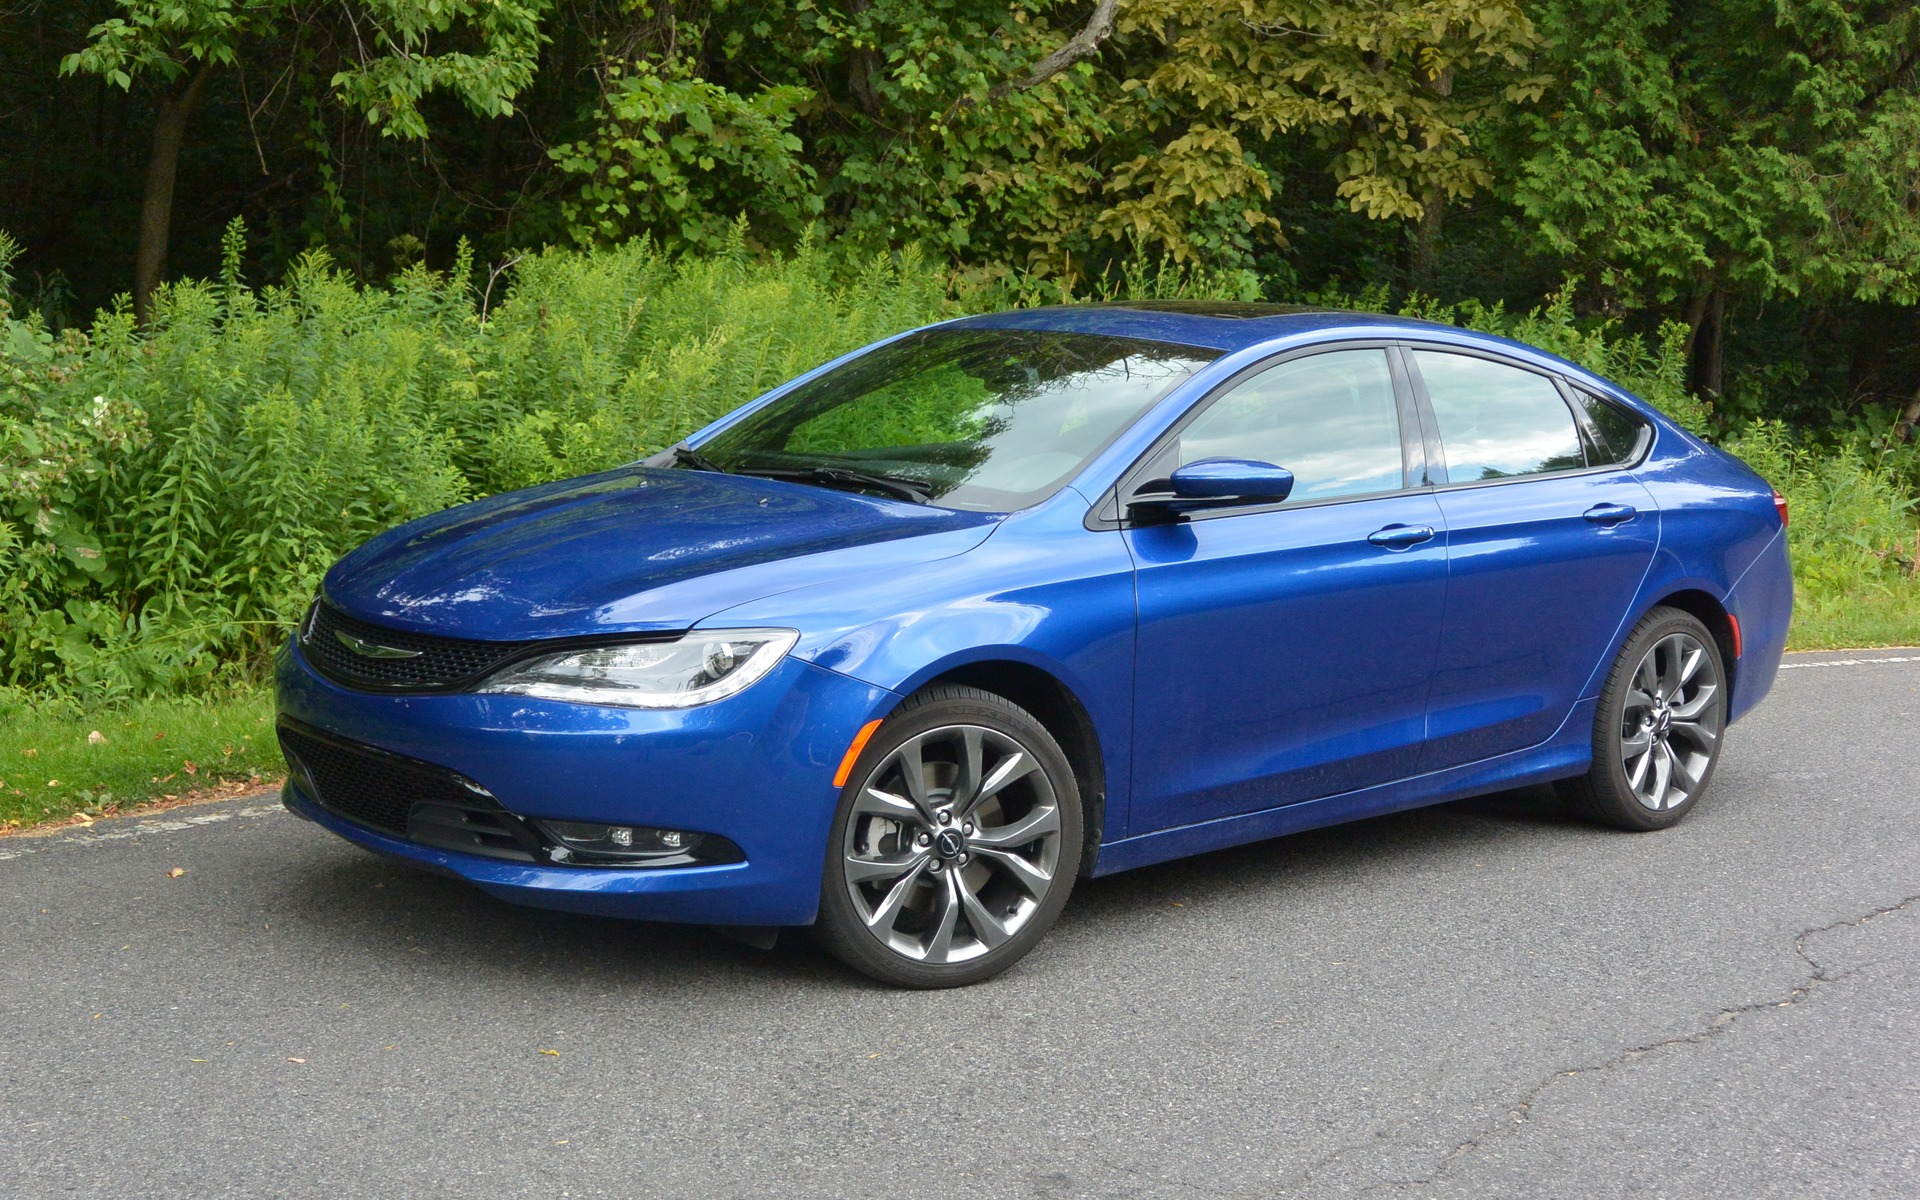 2016 Chrysler 200 News Reviews Picture Galleries And Videos 2015 Jetta Fuse Box Diagram The Car Guide